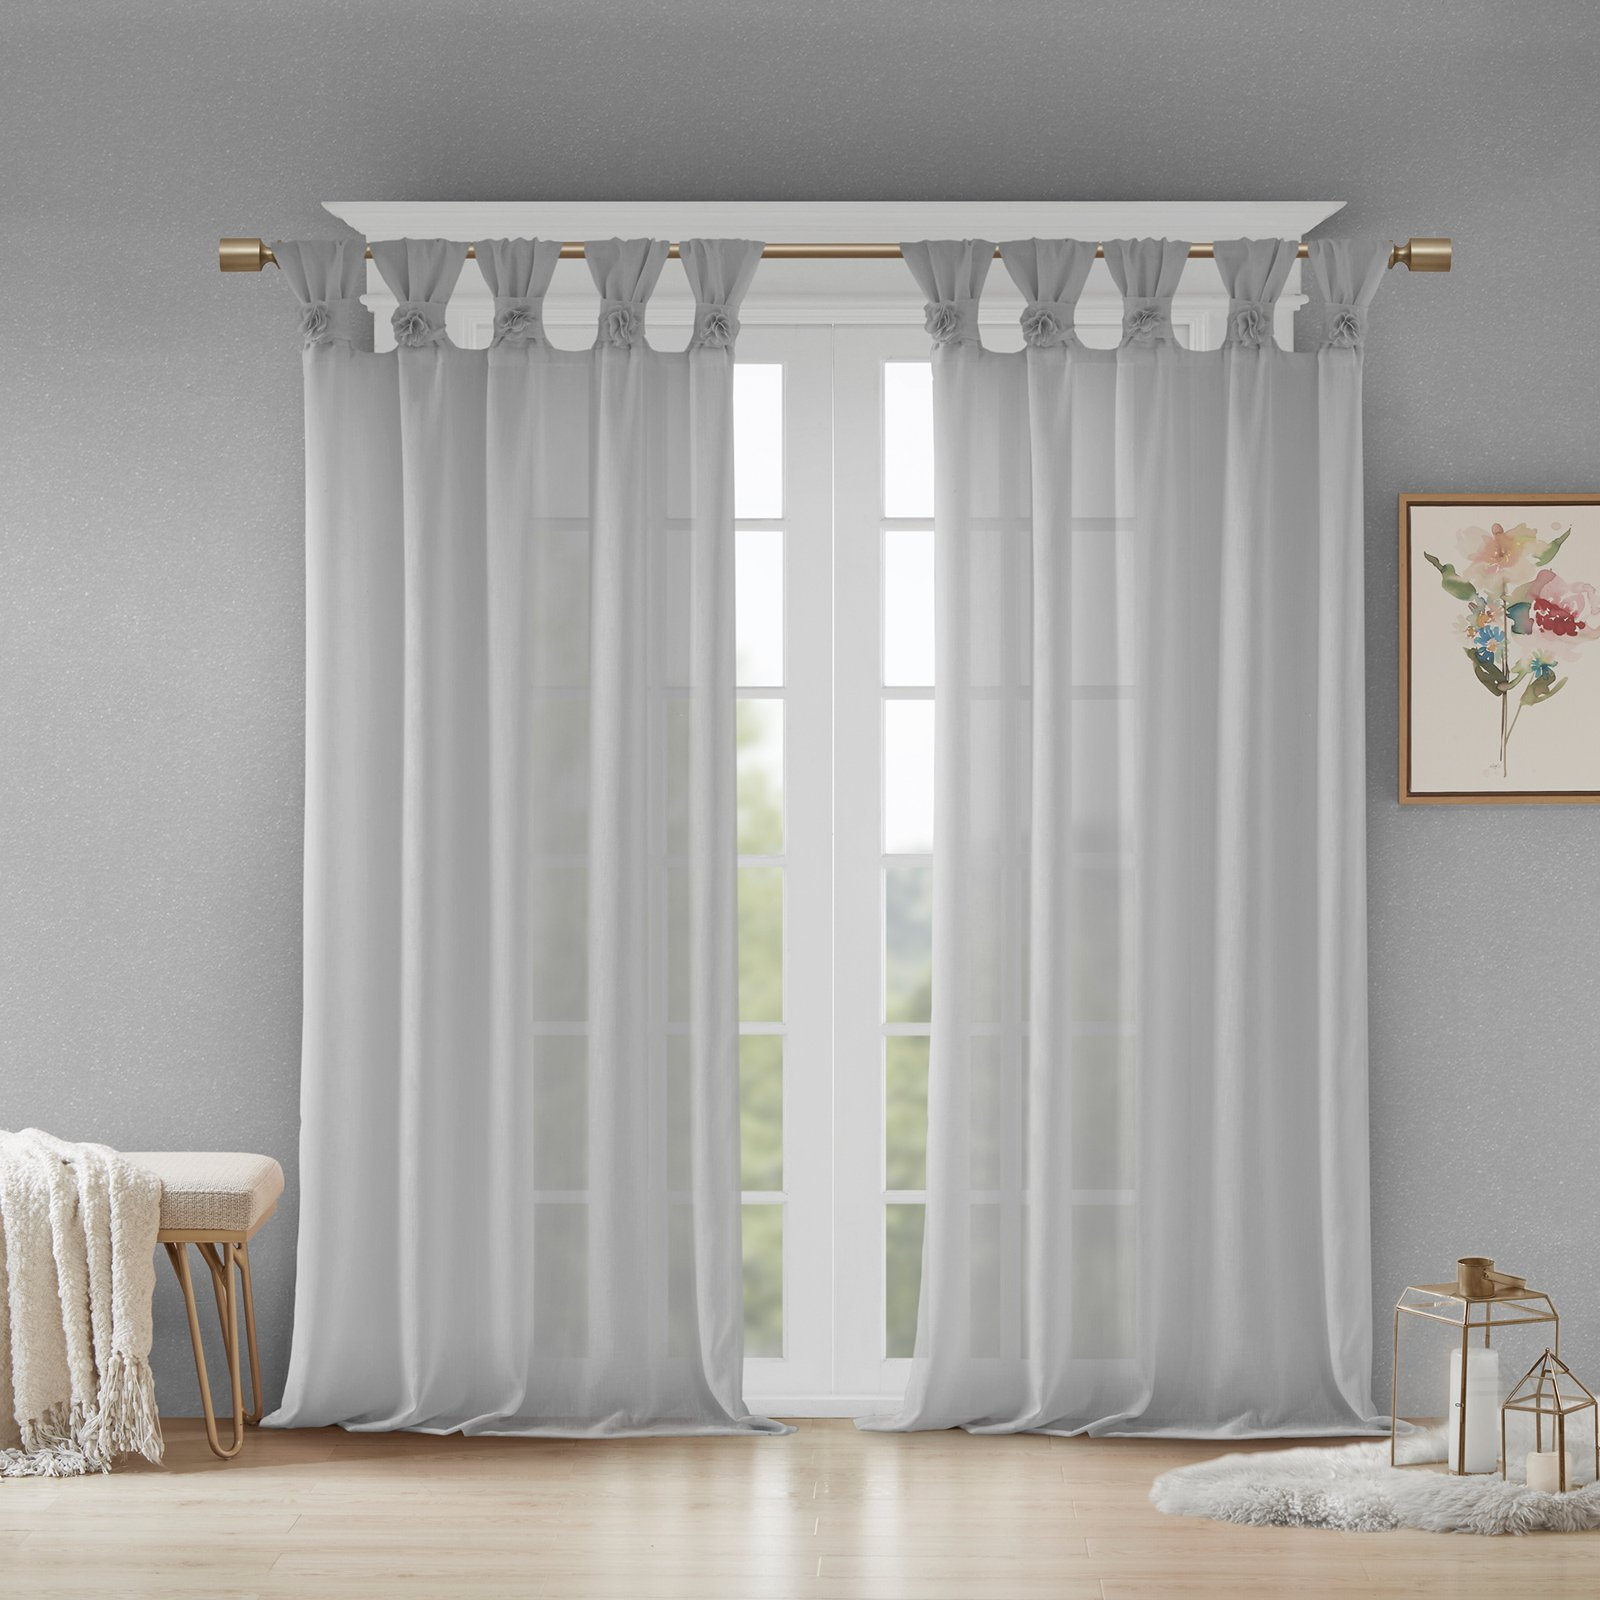 2021 Twisted Tab Lined Single Curtain Panels Pertaining To Madison Park Rosette Floral Twist Tab Top Embellished Flower (View 19 of 20)